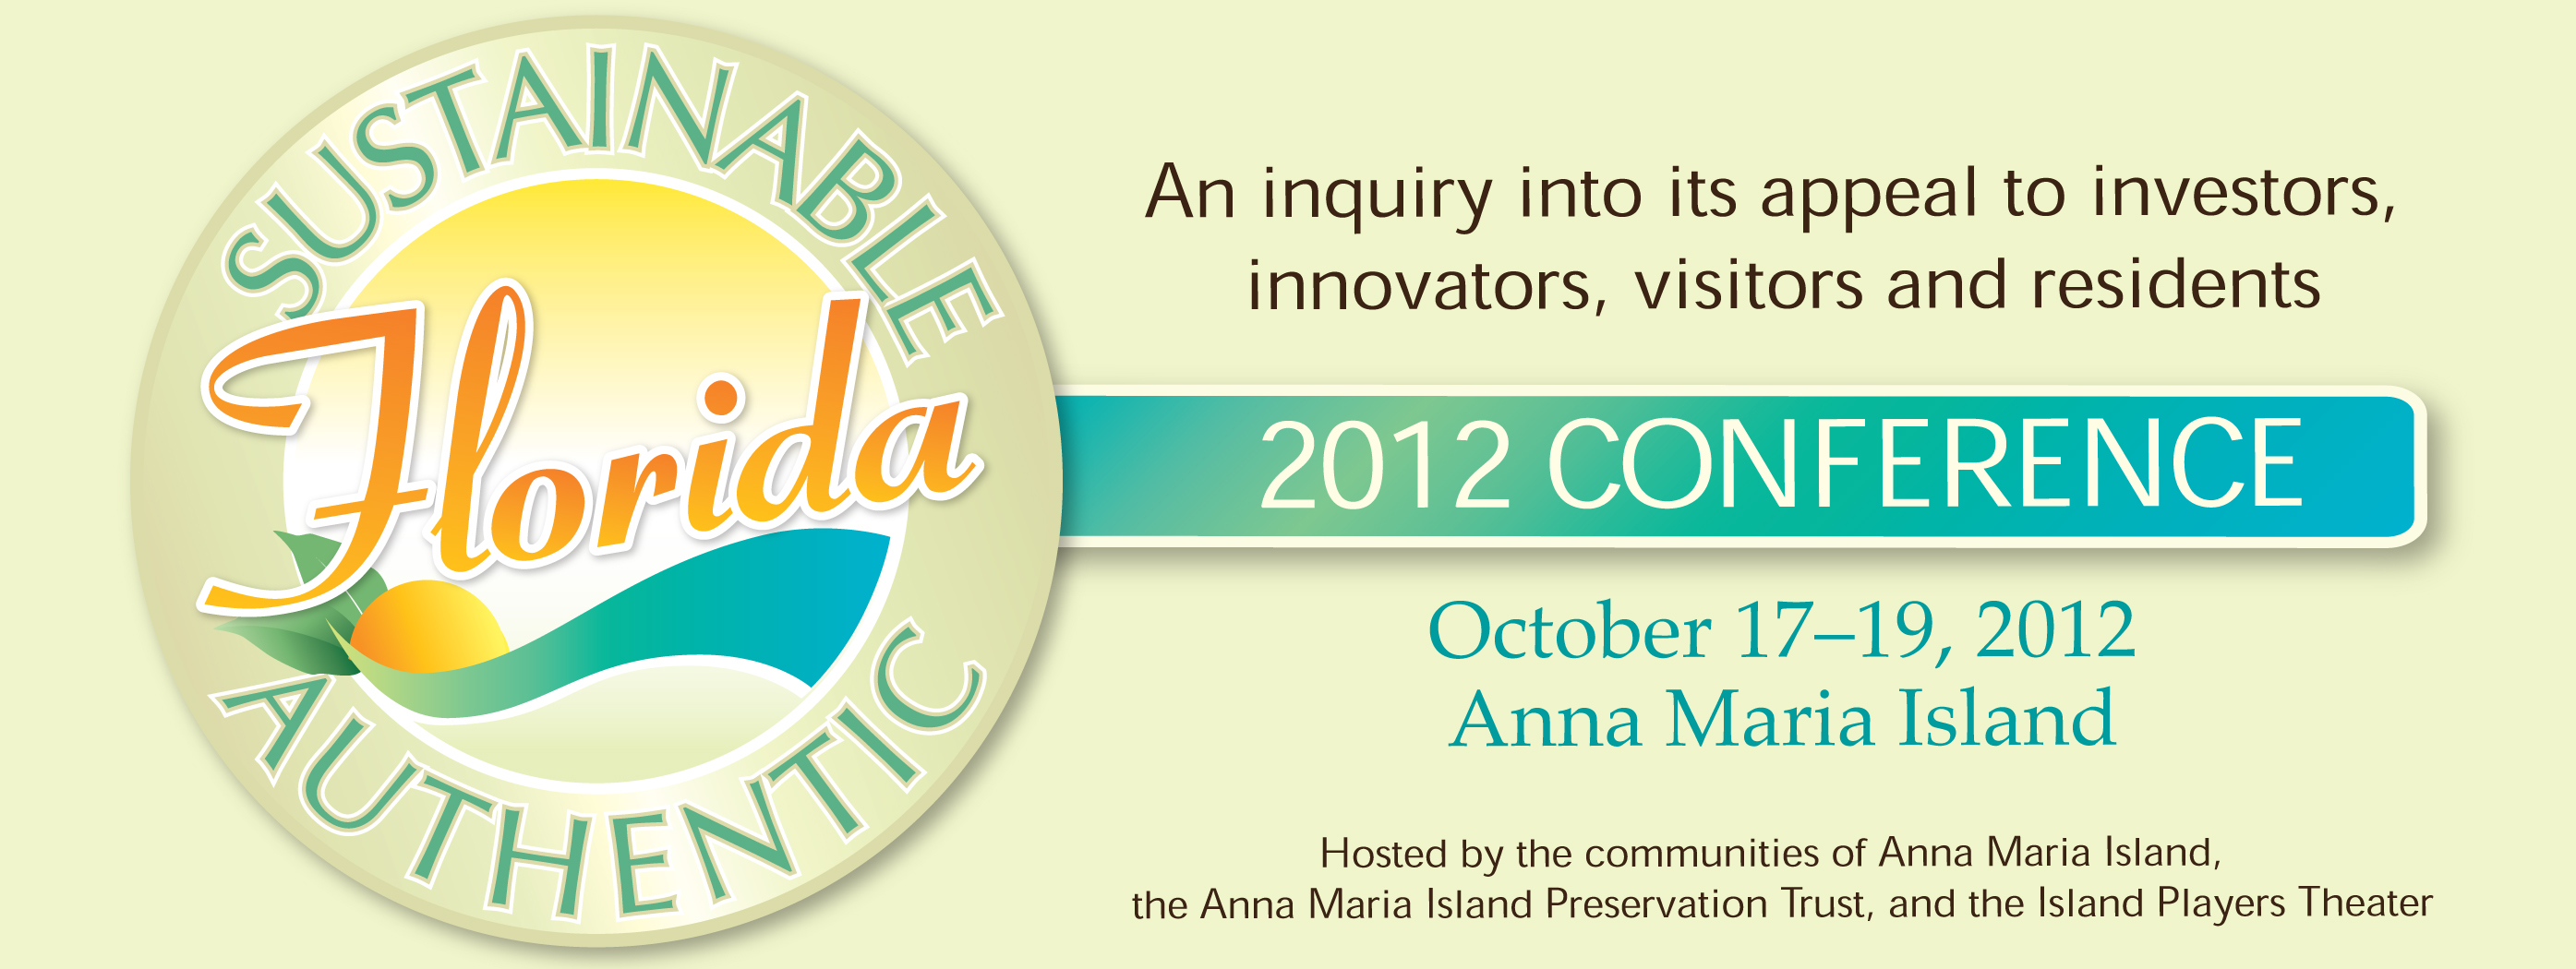 Sustainable Florida Authentic 2012 Conference Newsletter Masthead